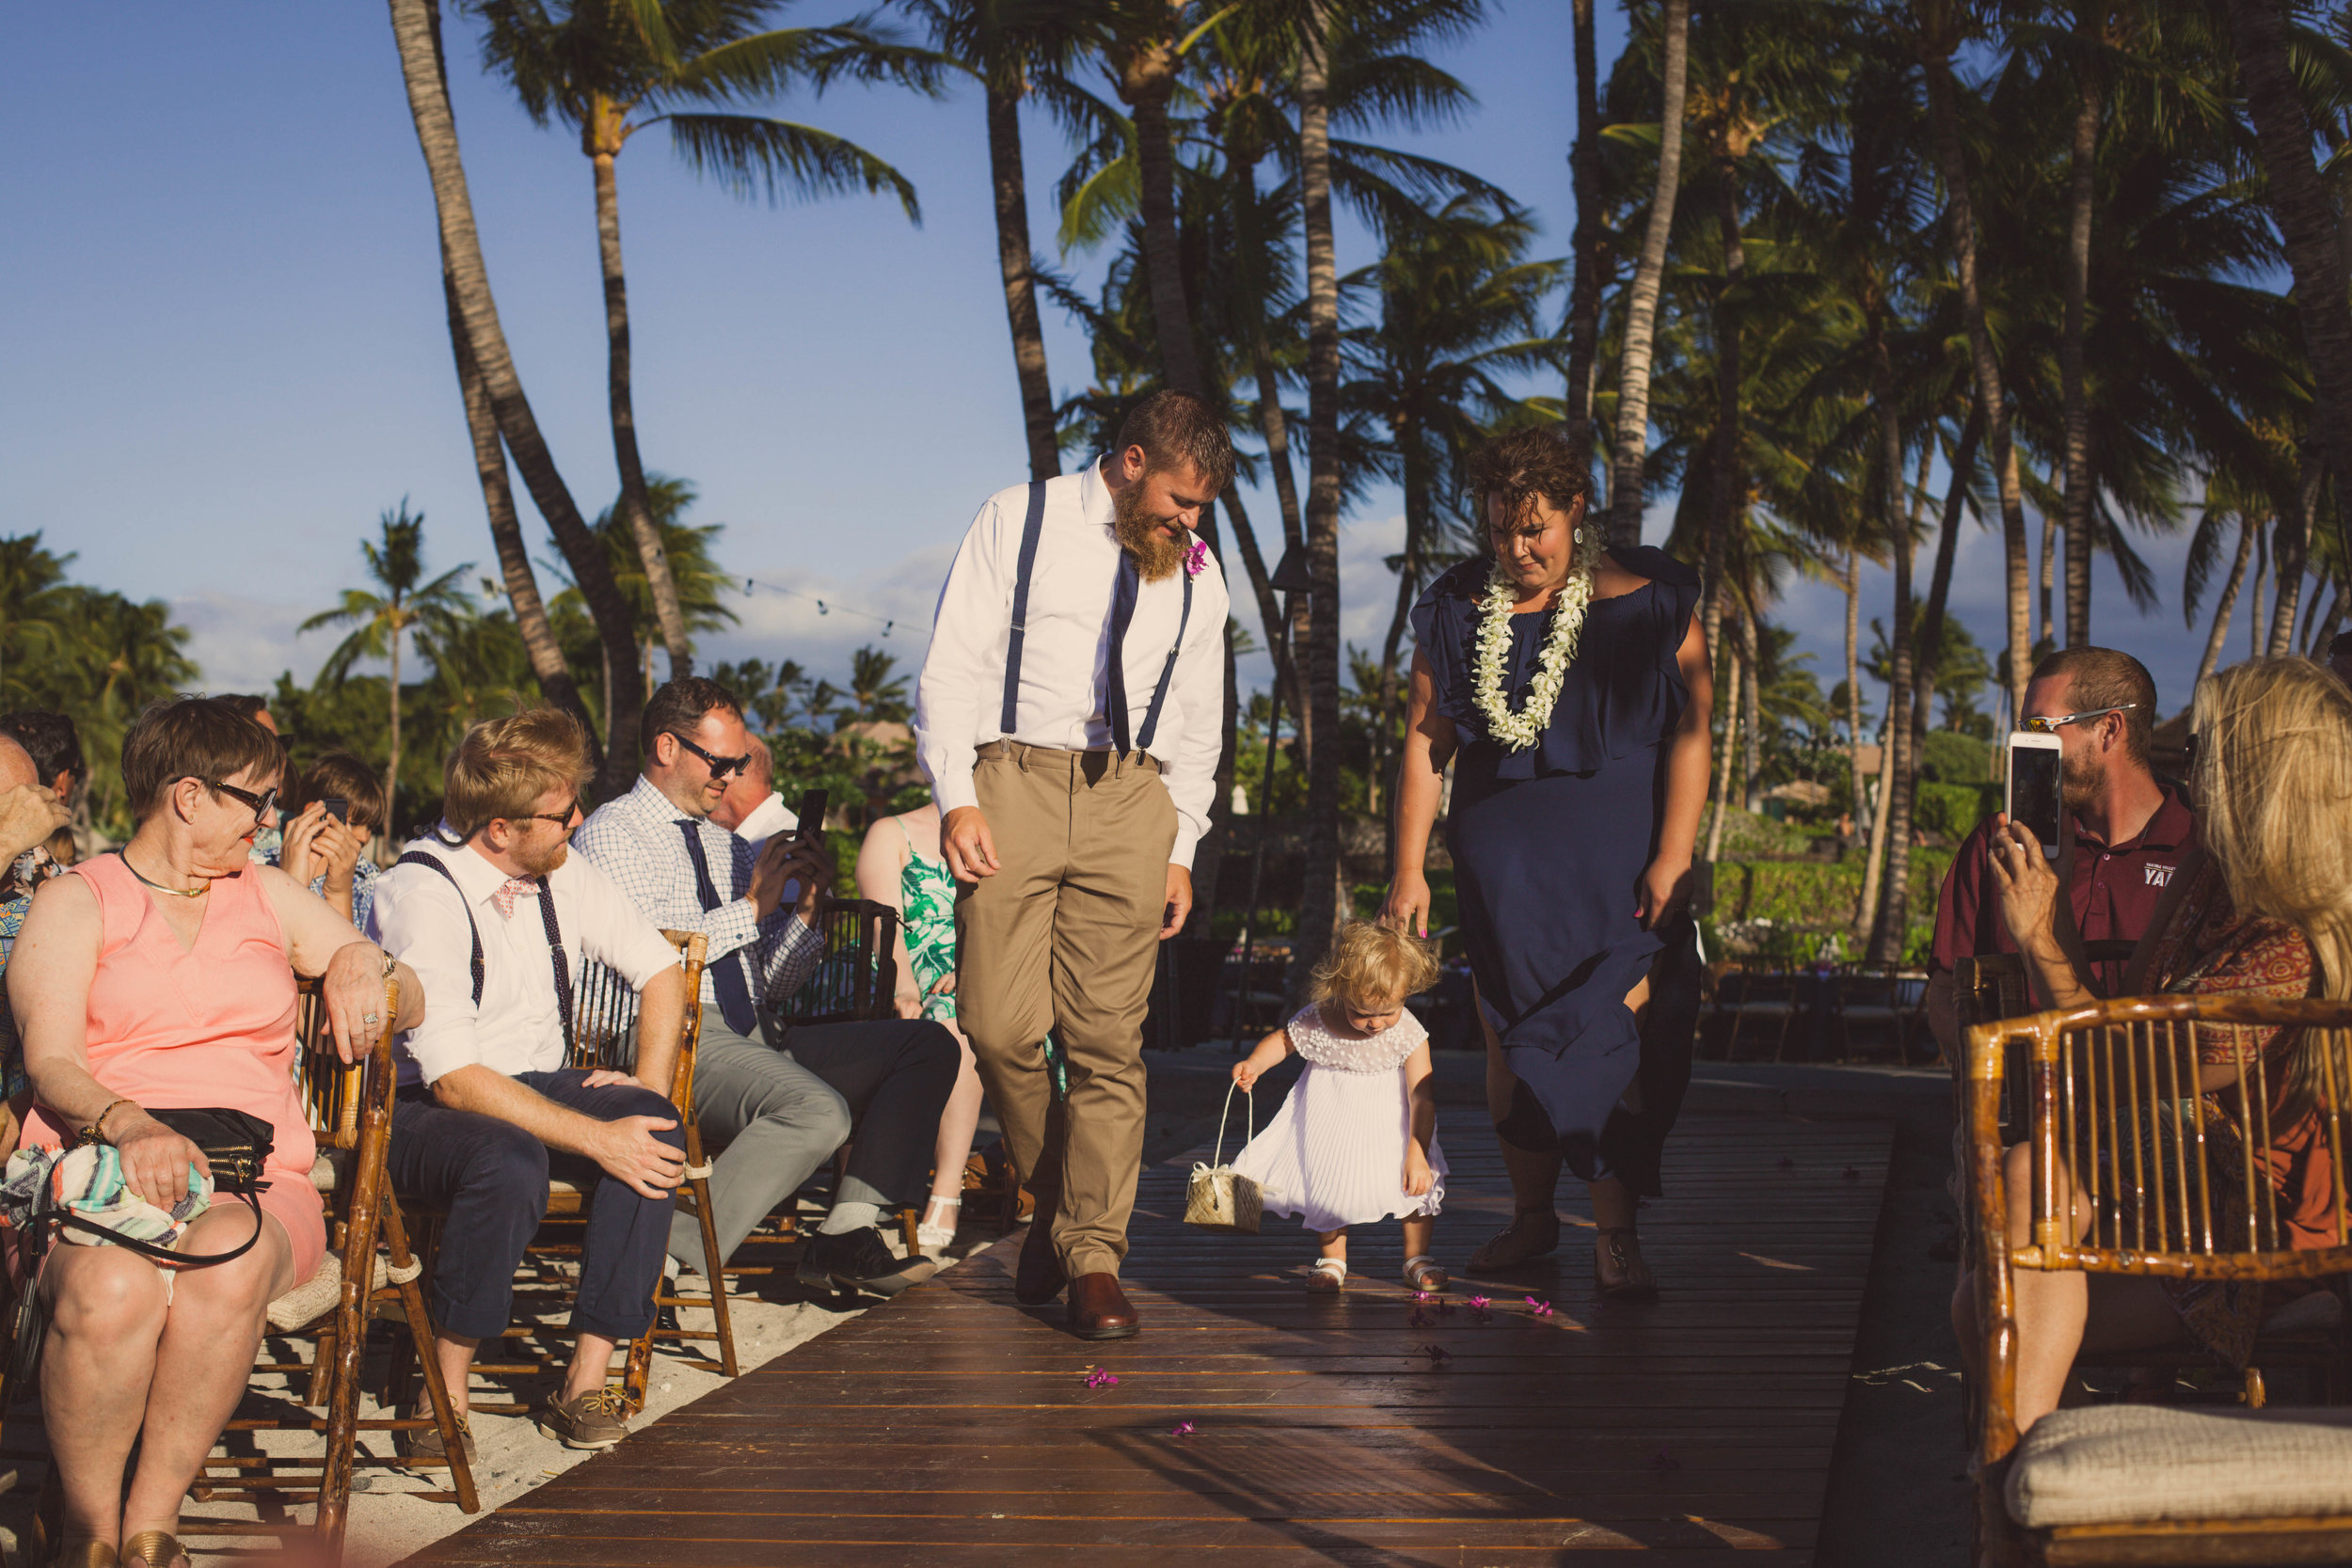 big island hawaii fairmont orchid beach wedding © kelilina photography 20170812173416-1.jpg